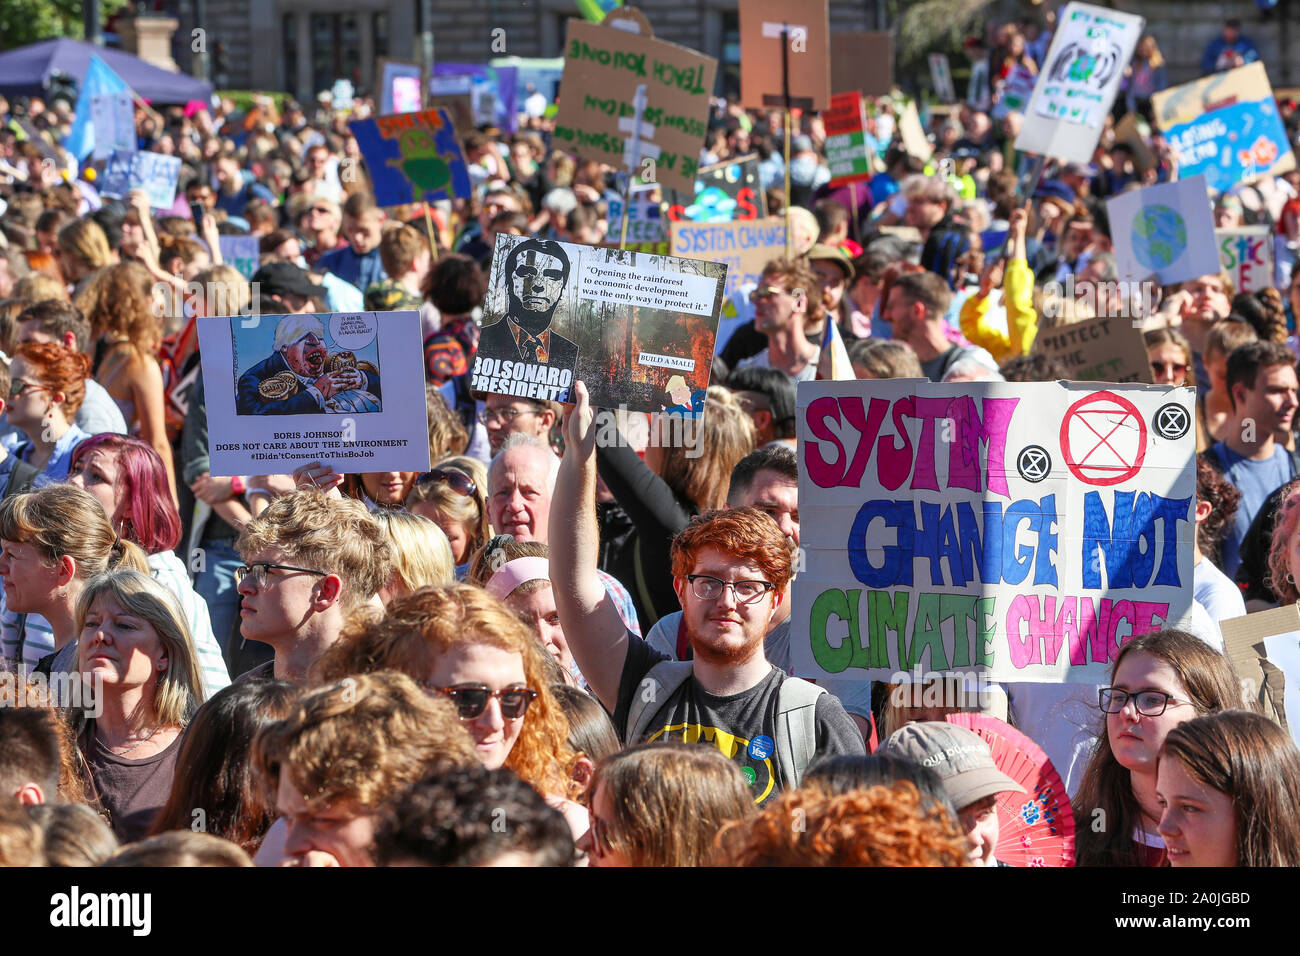 """Glasgow, UK. 20 September 2019. Several thousand turned out to take part in the """"Scottish Youth Climate Strikers"""" march from Kelvingrove Park, through the city to an assembly in George Square to draw attention to the need for action against climate change. This parade was only one of a number  that were taking place across the United Kingdom as part of a coordinated day of action. Credit: Findlay / Alamy News. Stock Photo"""